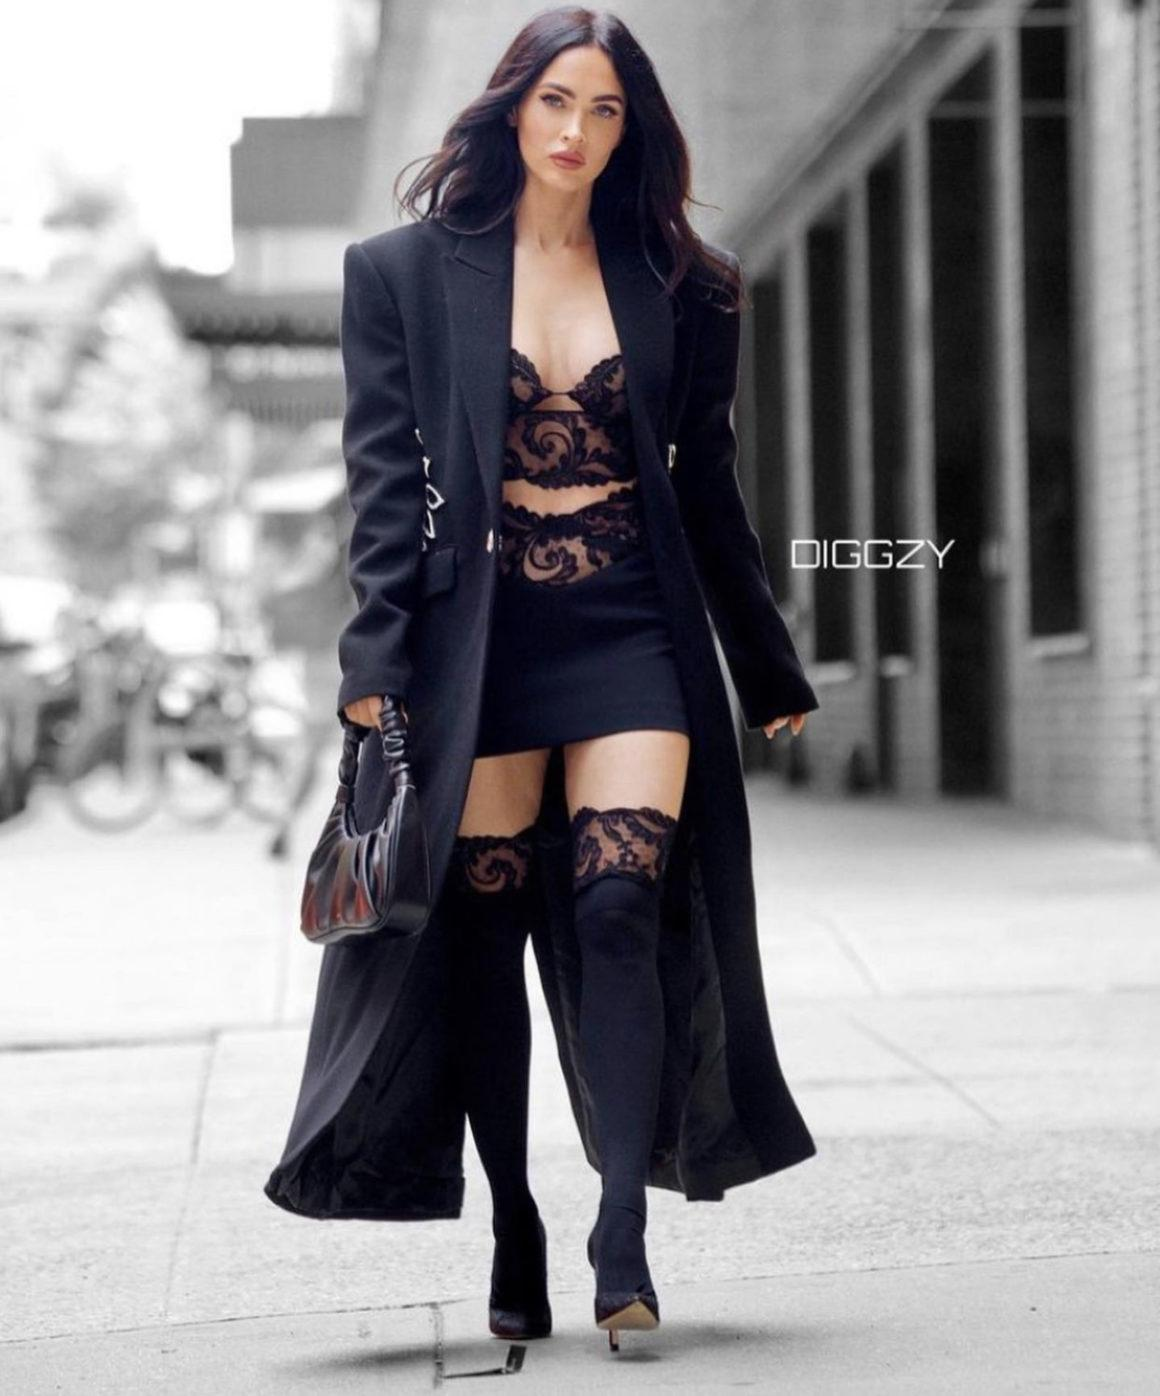 Megan Fox Stuns in David Koma Resort 2022 Black Outfit While Leaving a Business Meeting